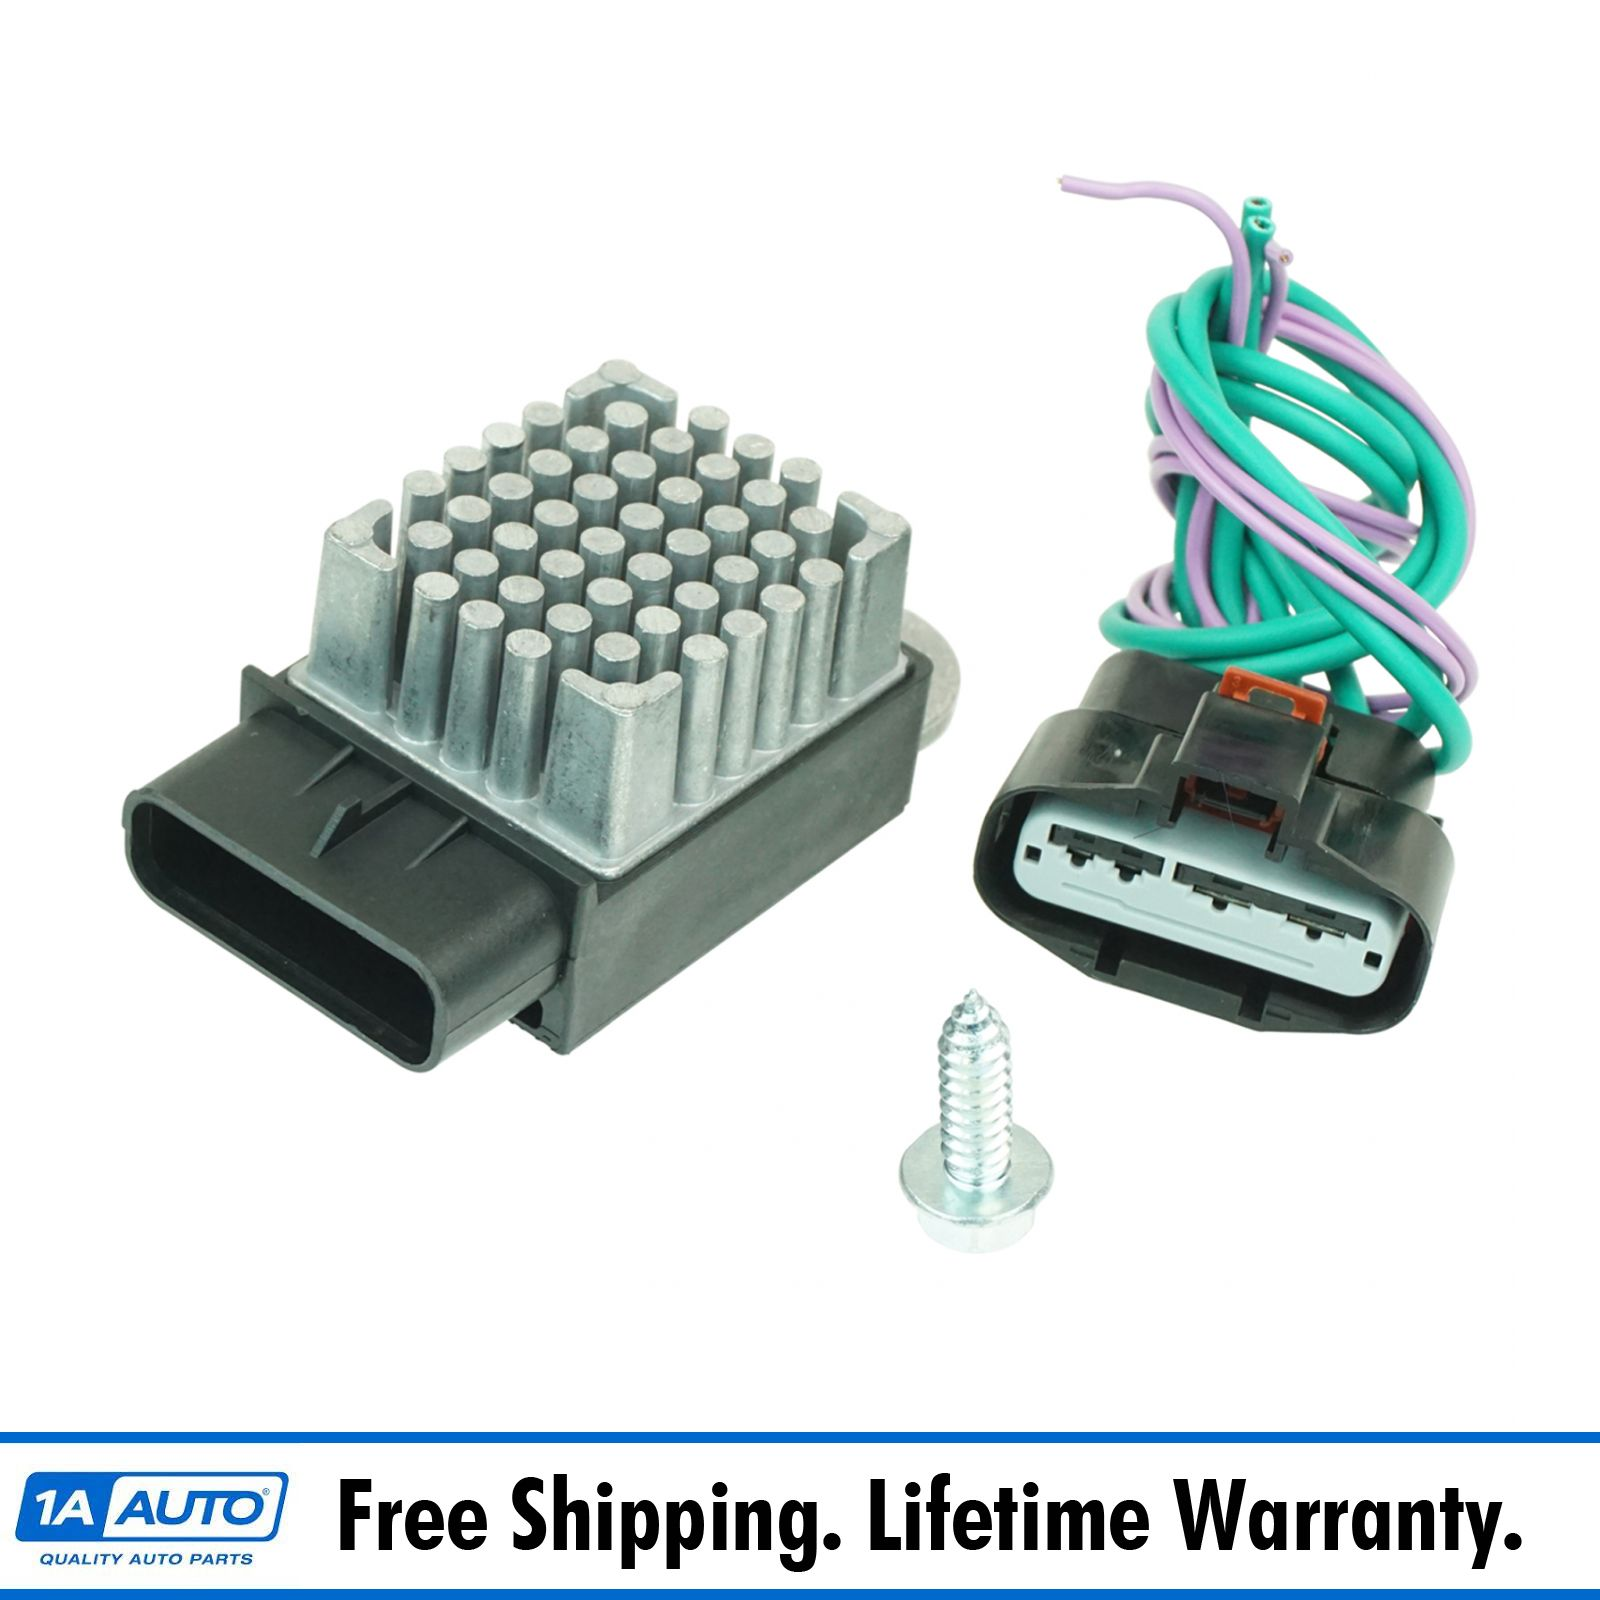 Details about Radiator Cooling Fan Relay for Chrysler Pacifica Voyager  Dodge Grand Caravan